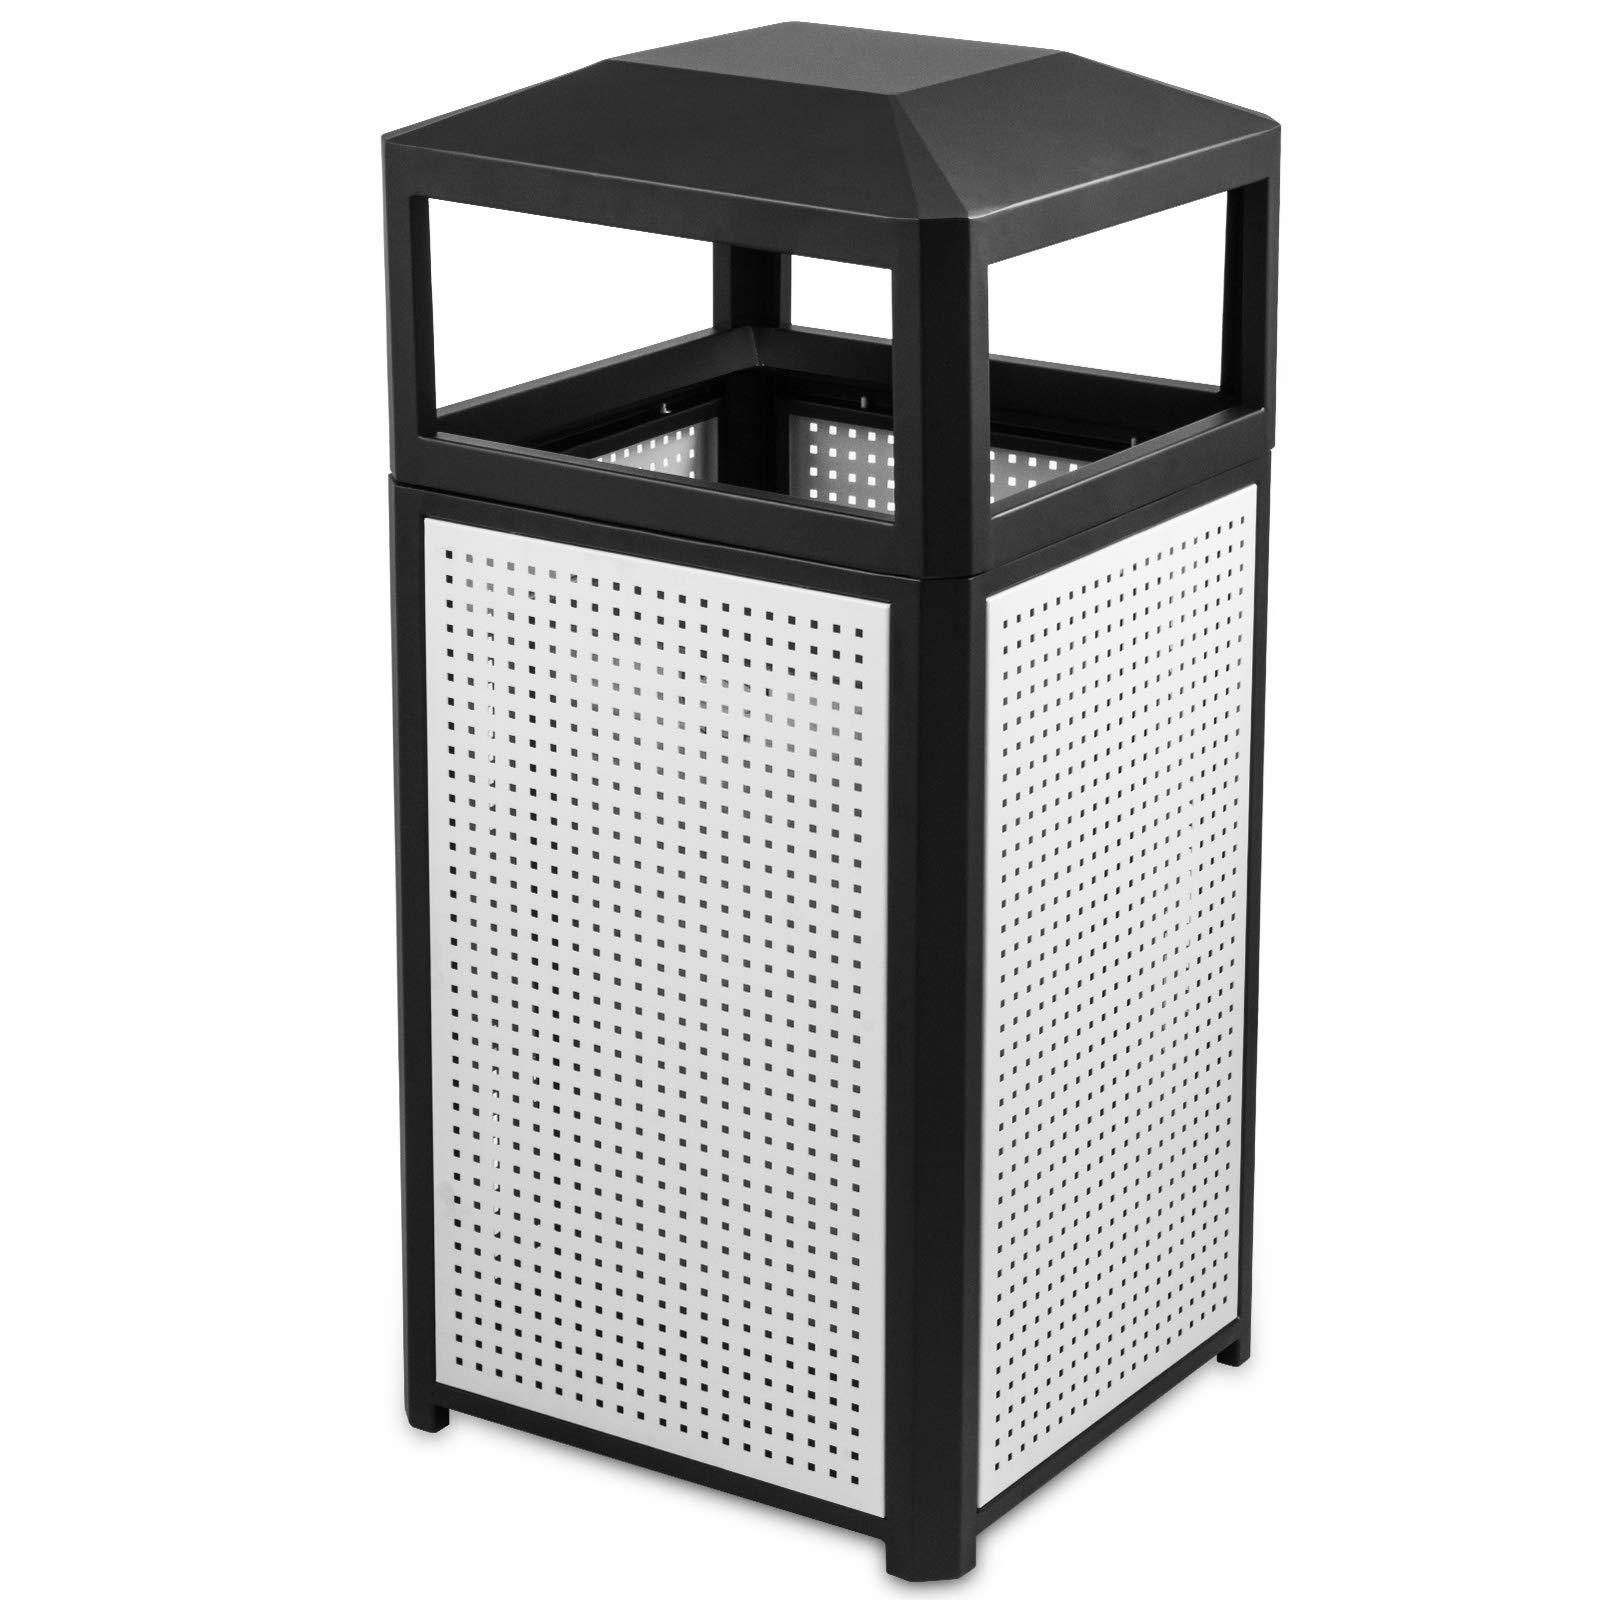 BestEquip Garbage Can 15 Gallon Trash Cans Commercial Outdoor Trash Can for Coffee Houses Campuses and Parks by BestEquip